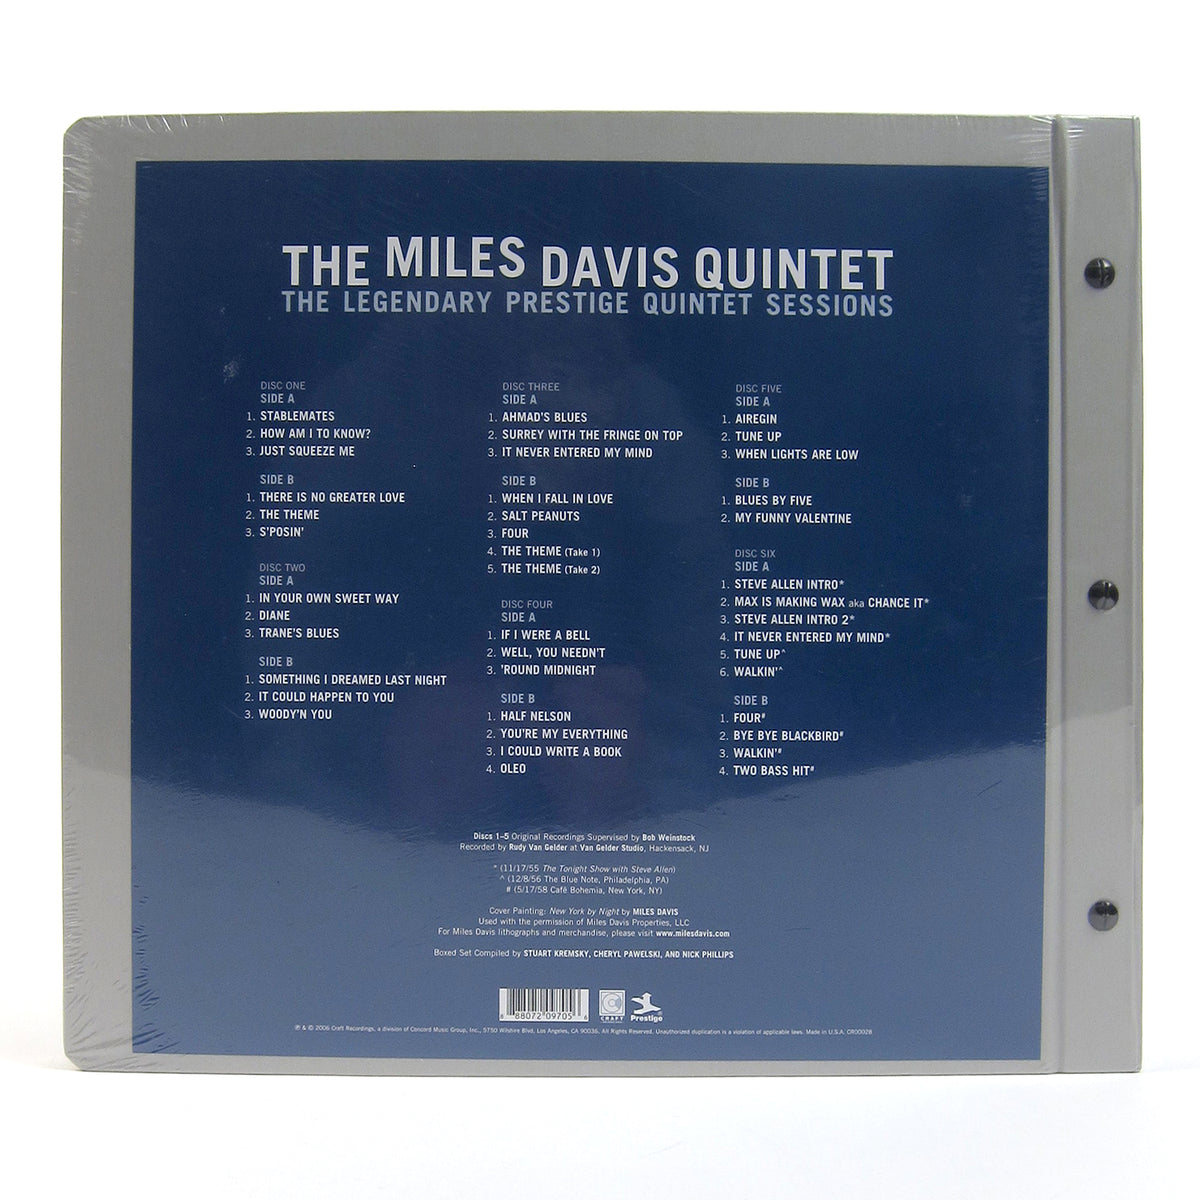 Miles Davis Quintet: The Legendary Prestige Quintet Sessions Vinyl 6LP